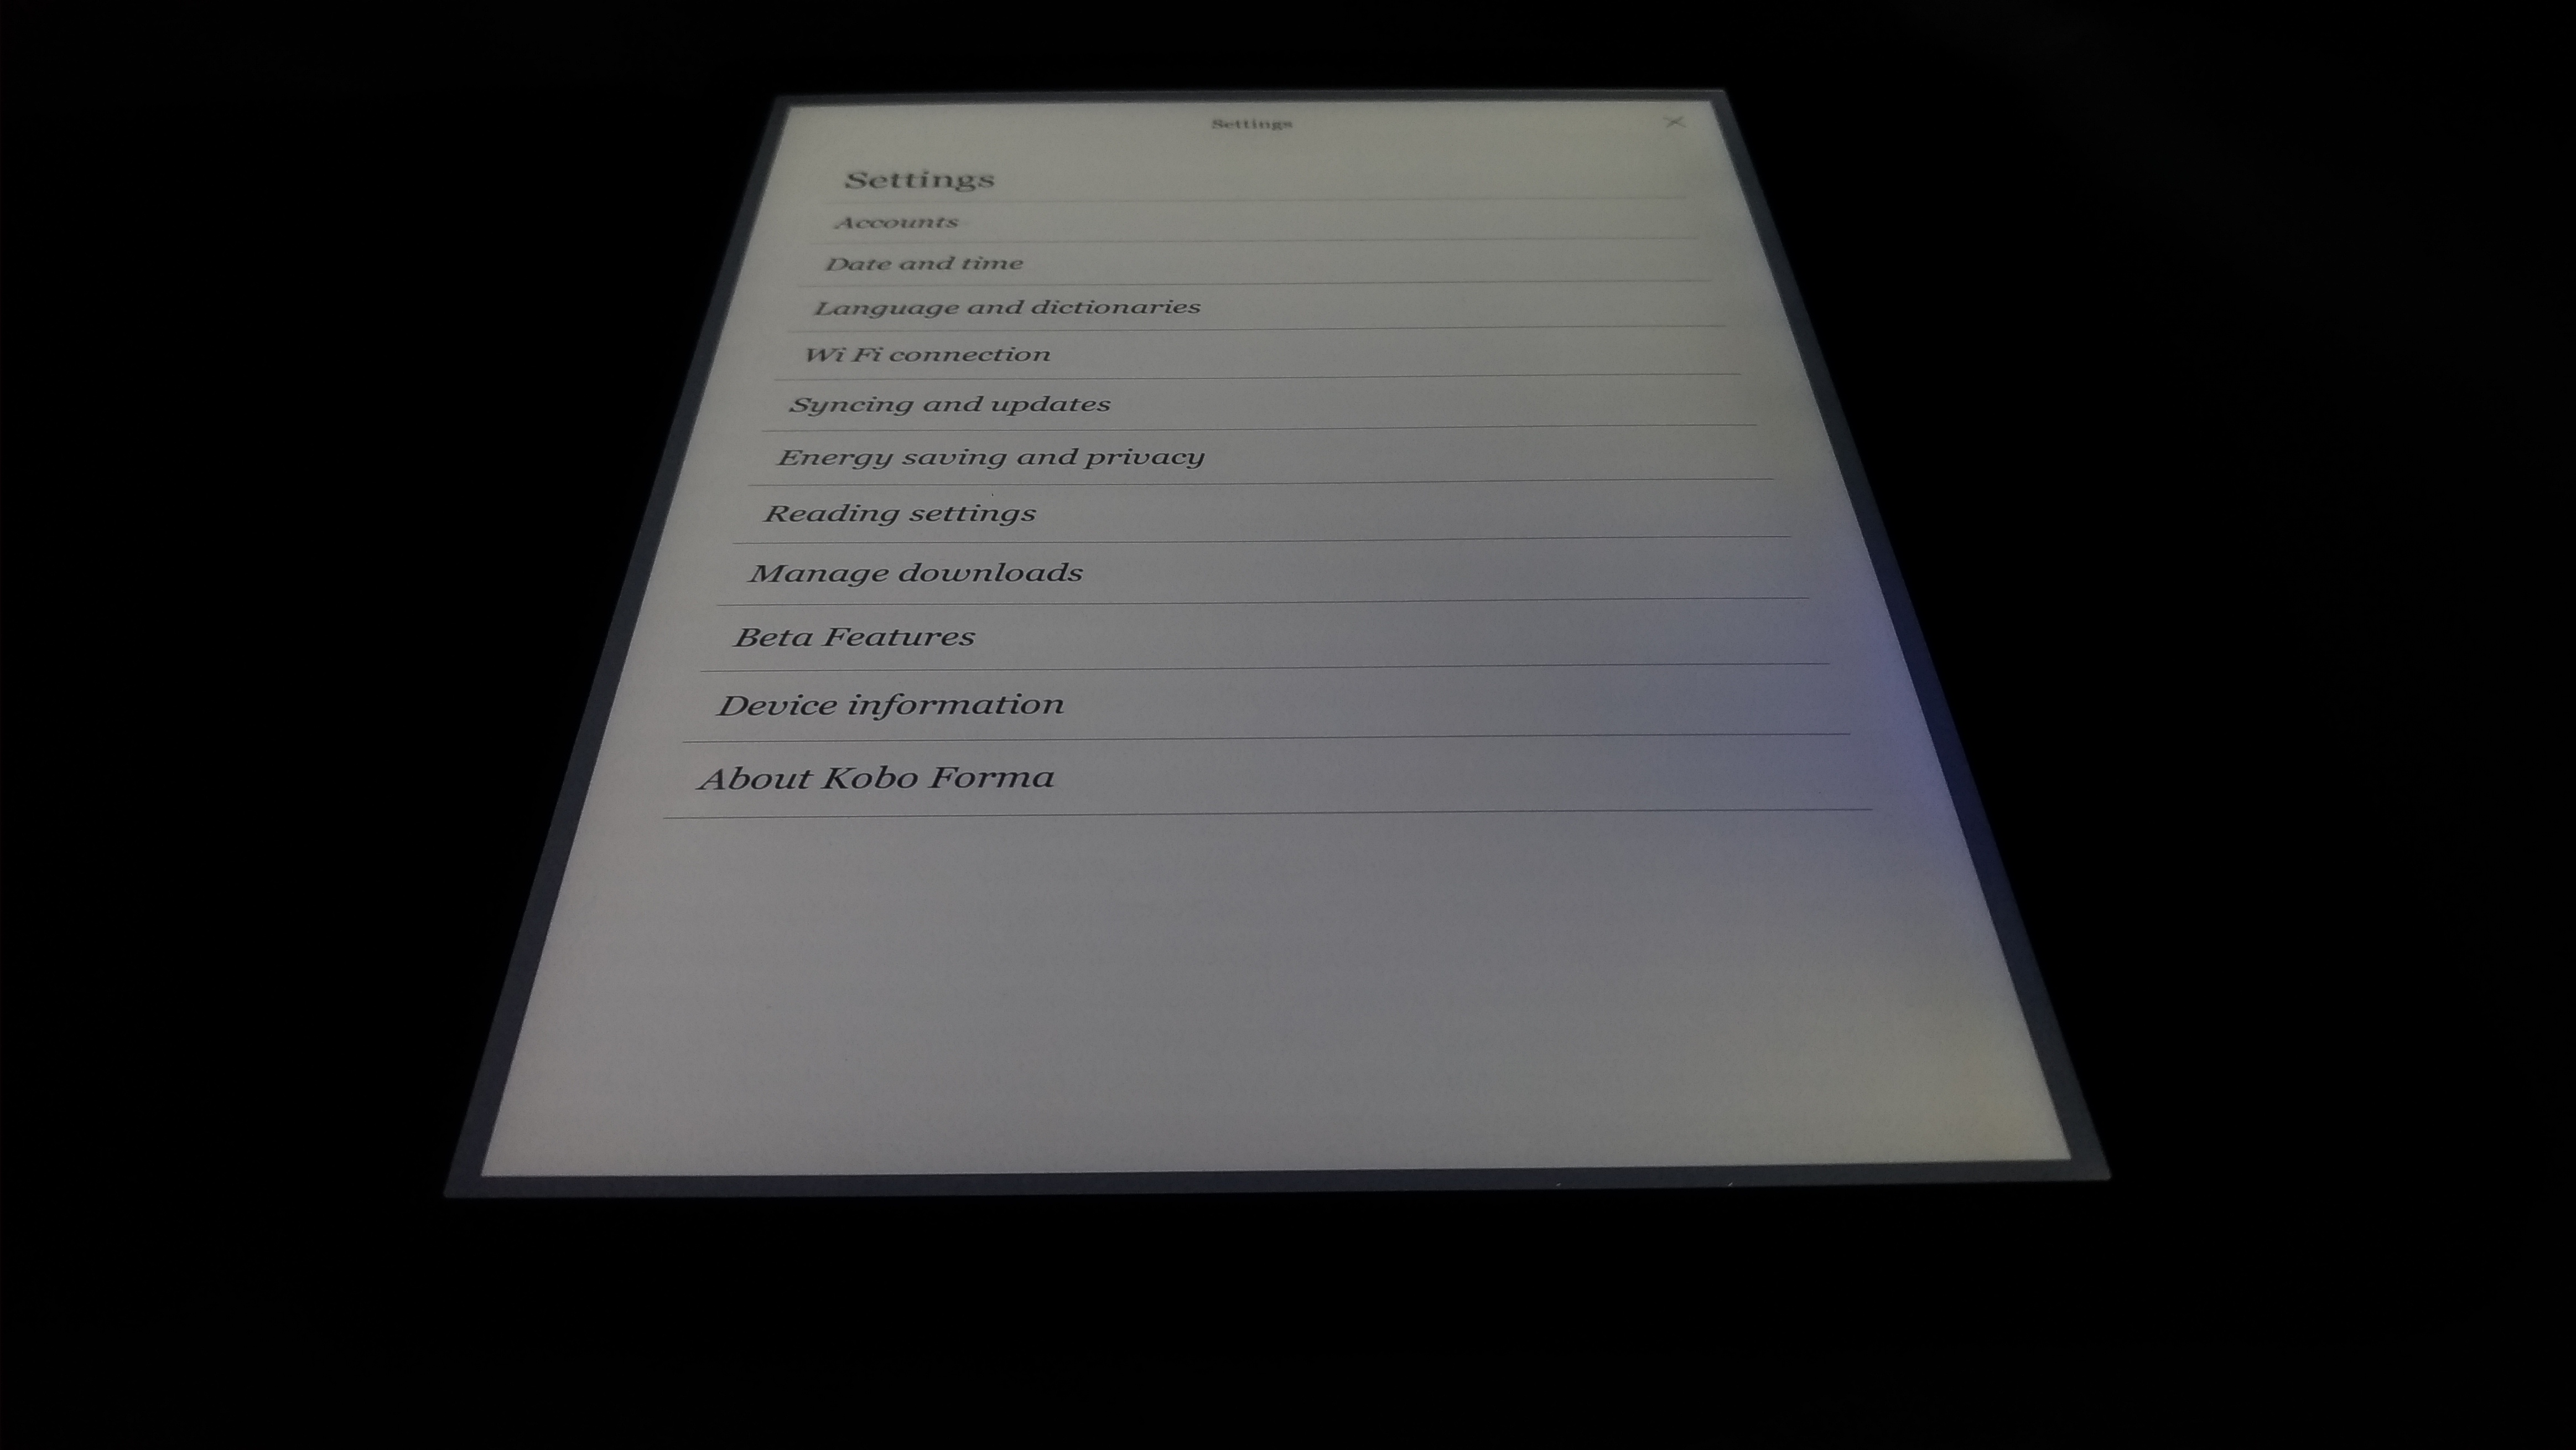 Kobo Forma front light malfunction within a week    - MobileRead Forums